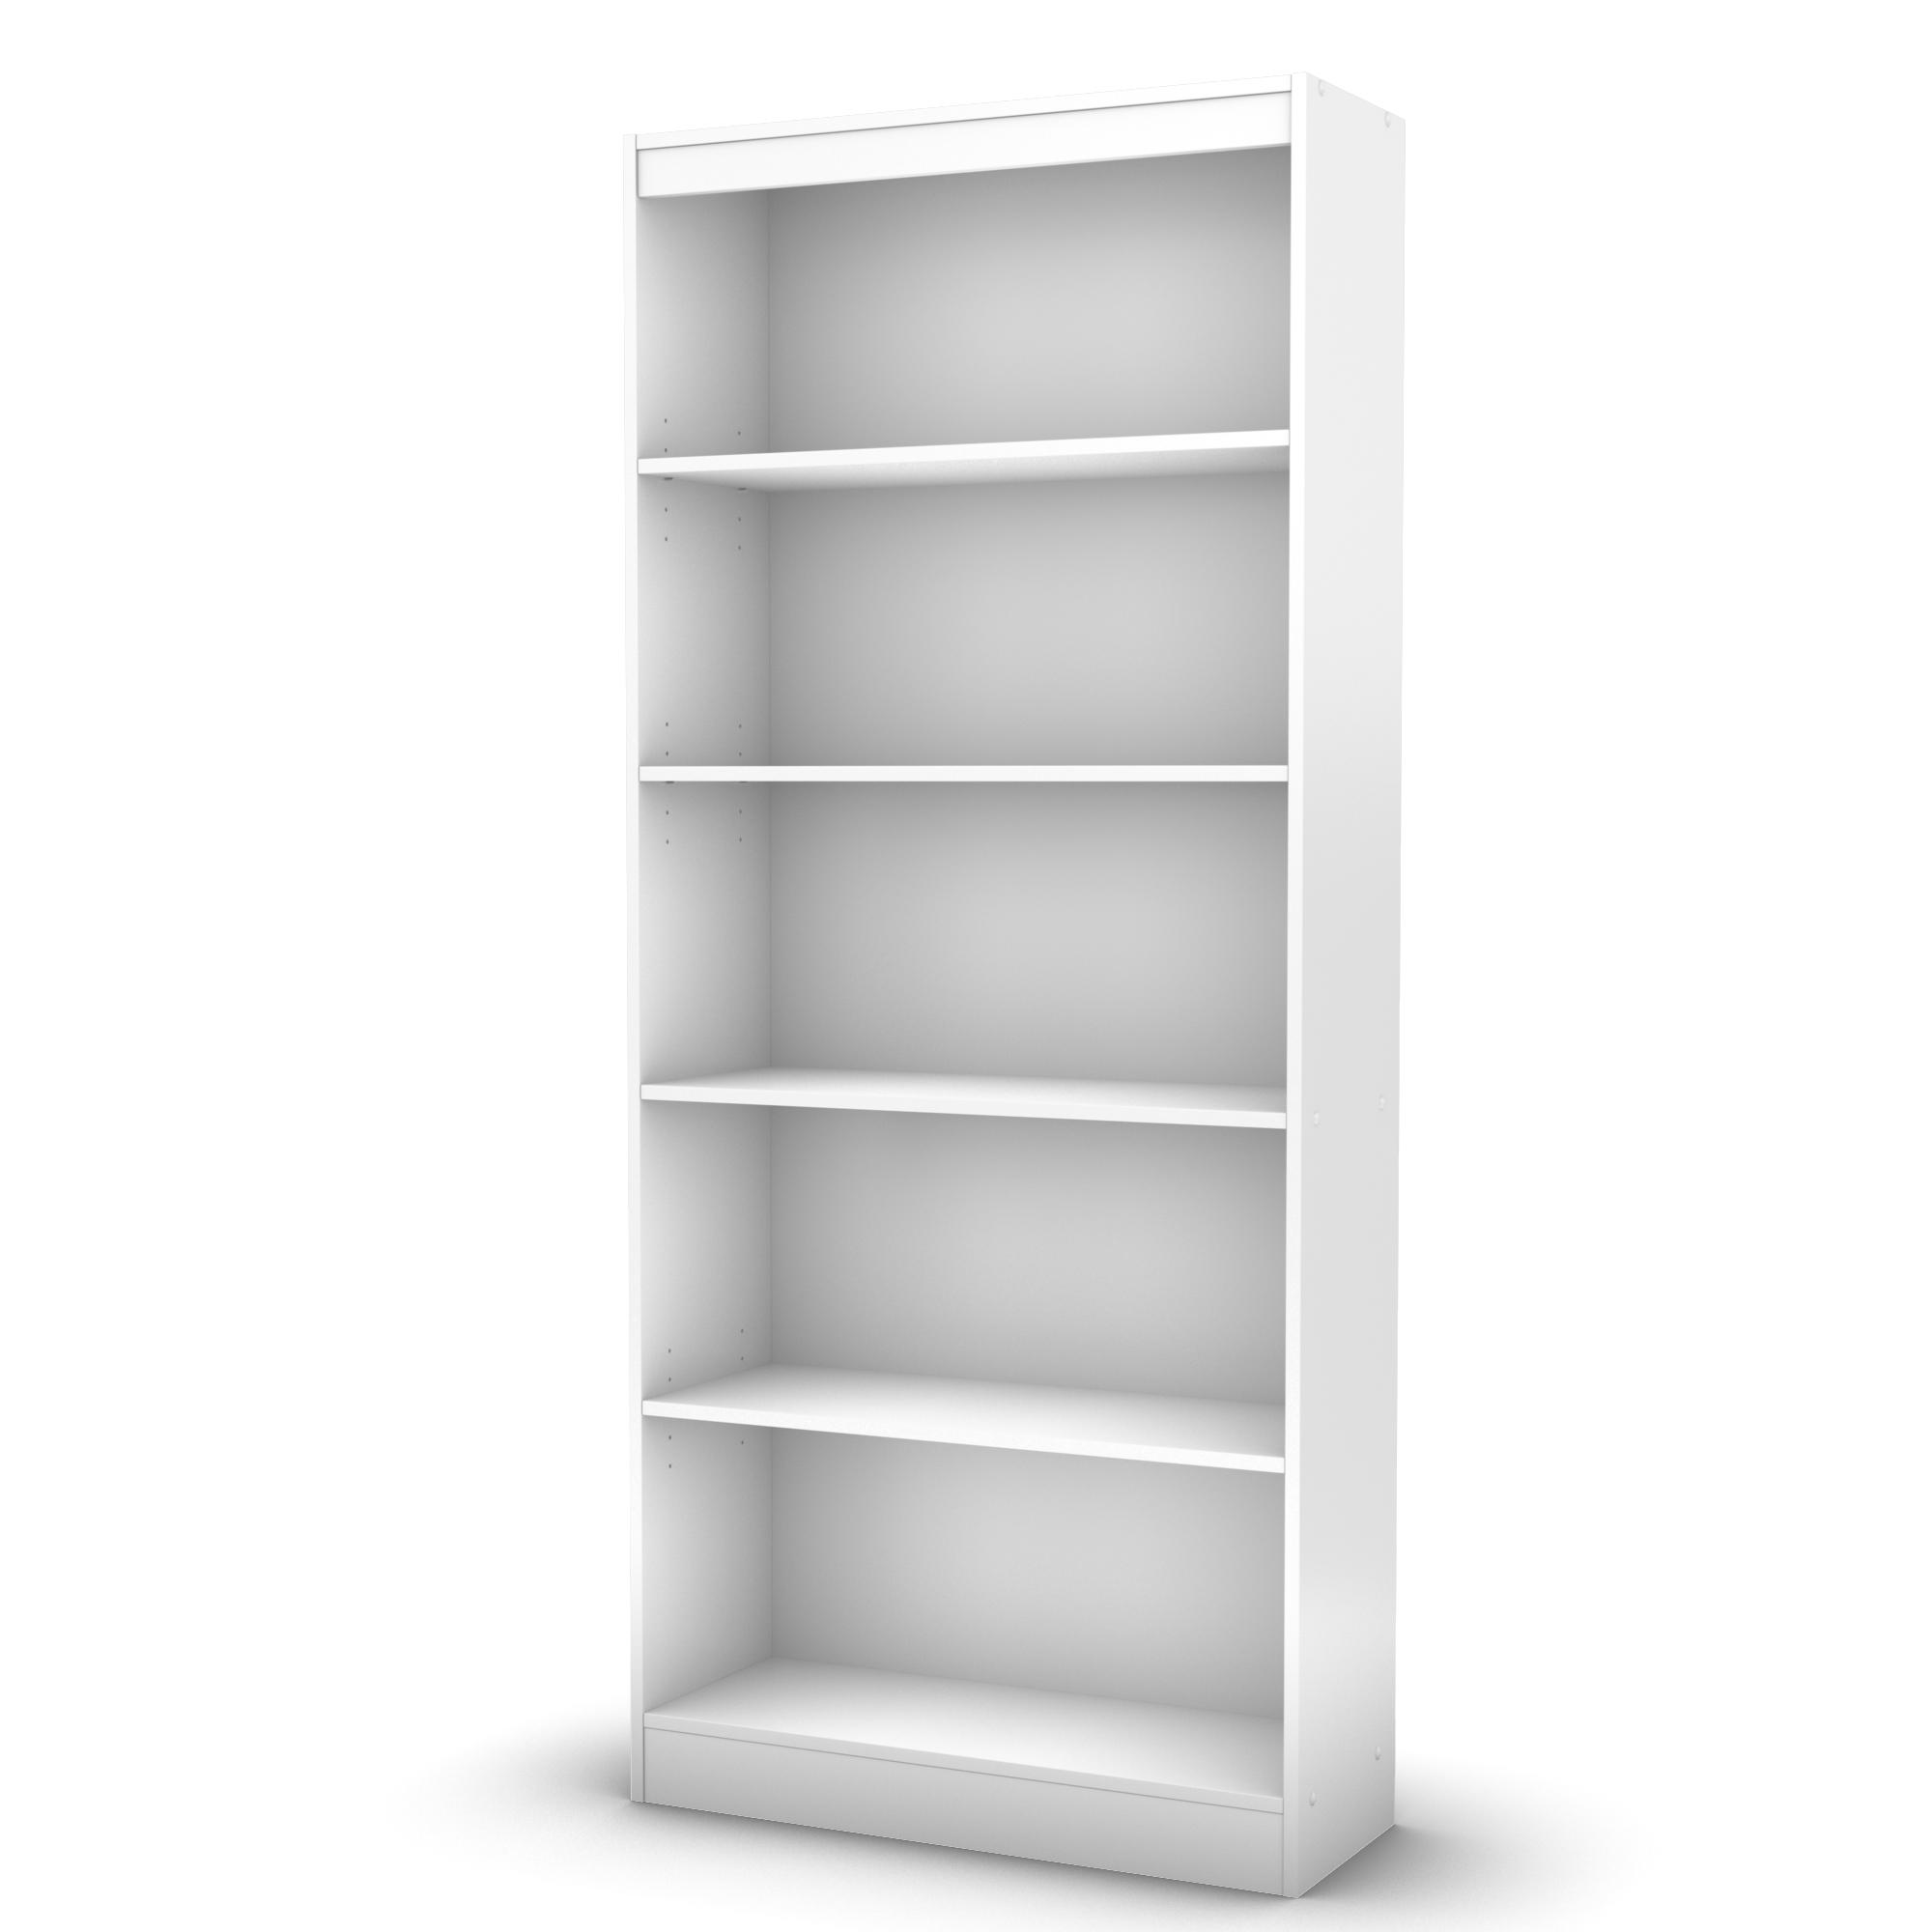 shelf bookcase black white gray brown storage bookshelf wood  - shelfbookcaseblackwhitegraybrownstorage